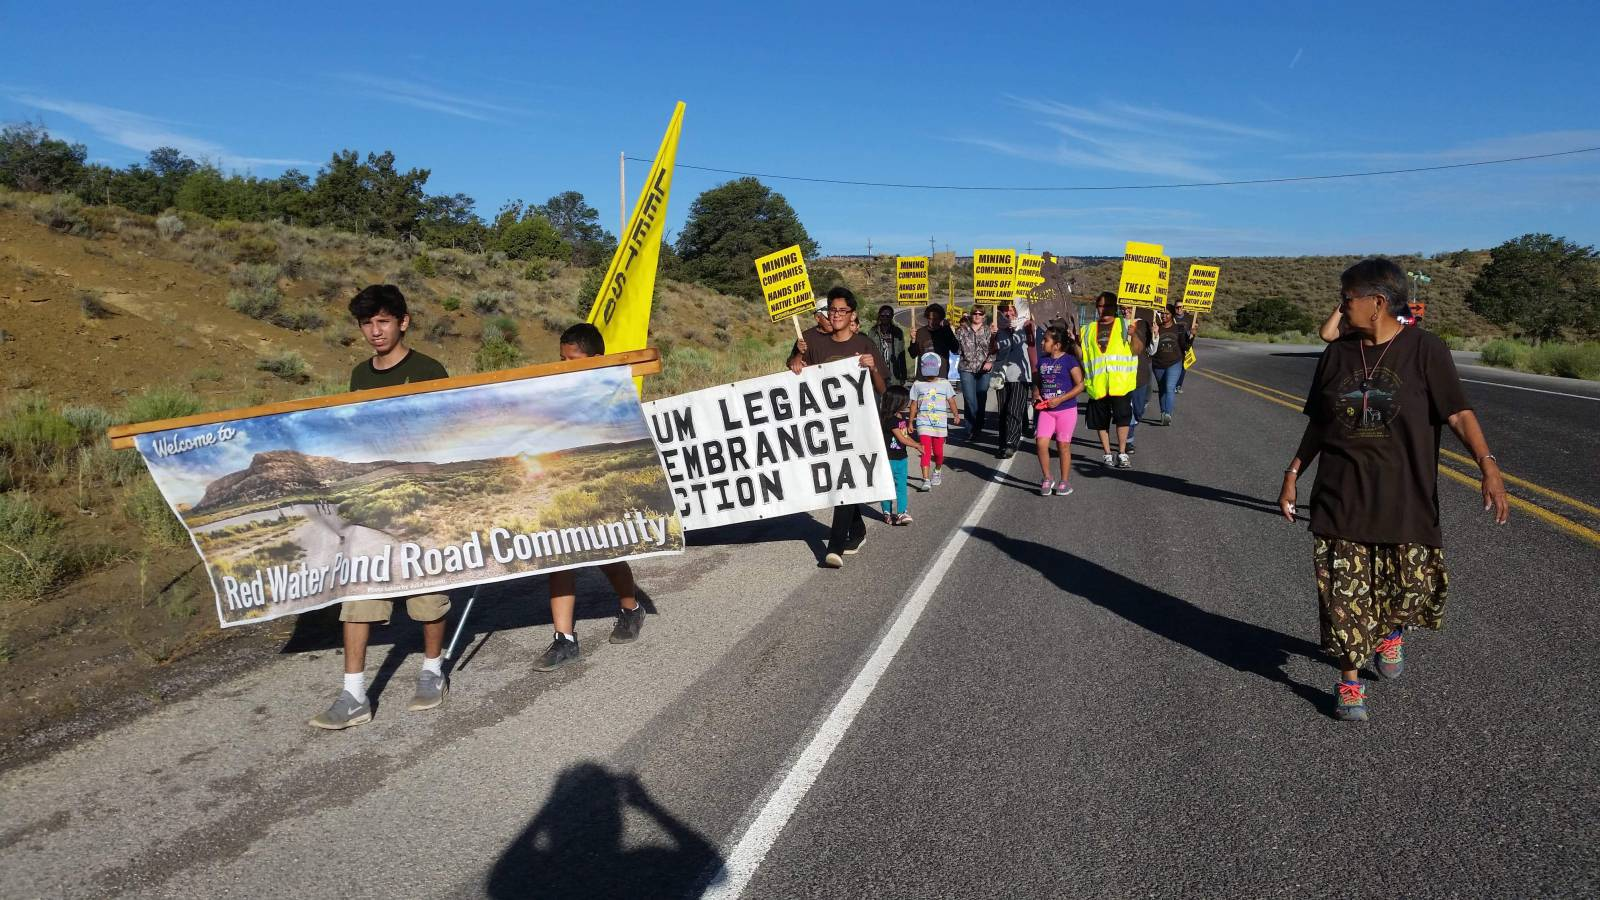 Protesting Church Rock uranium disaster